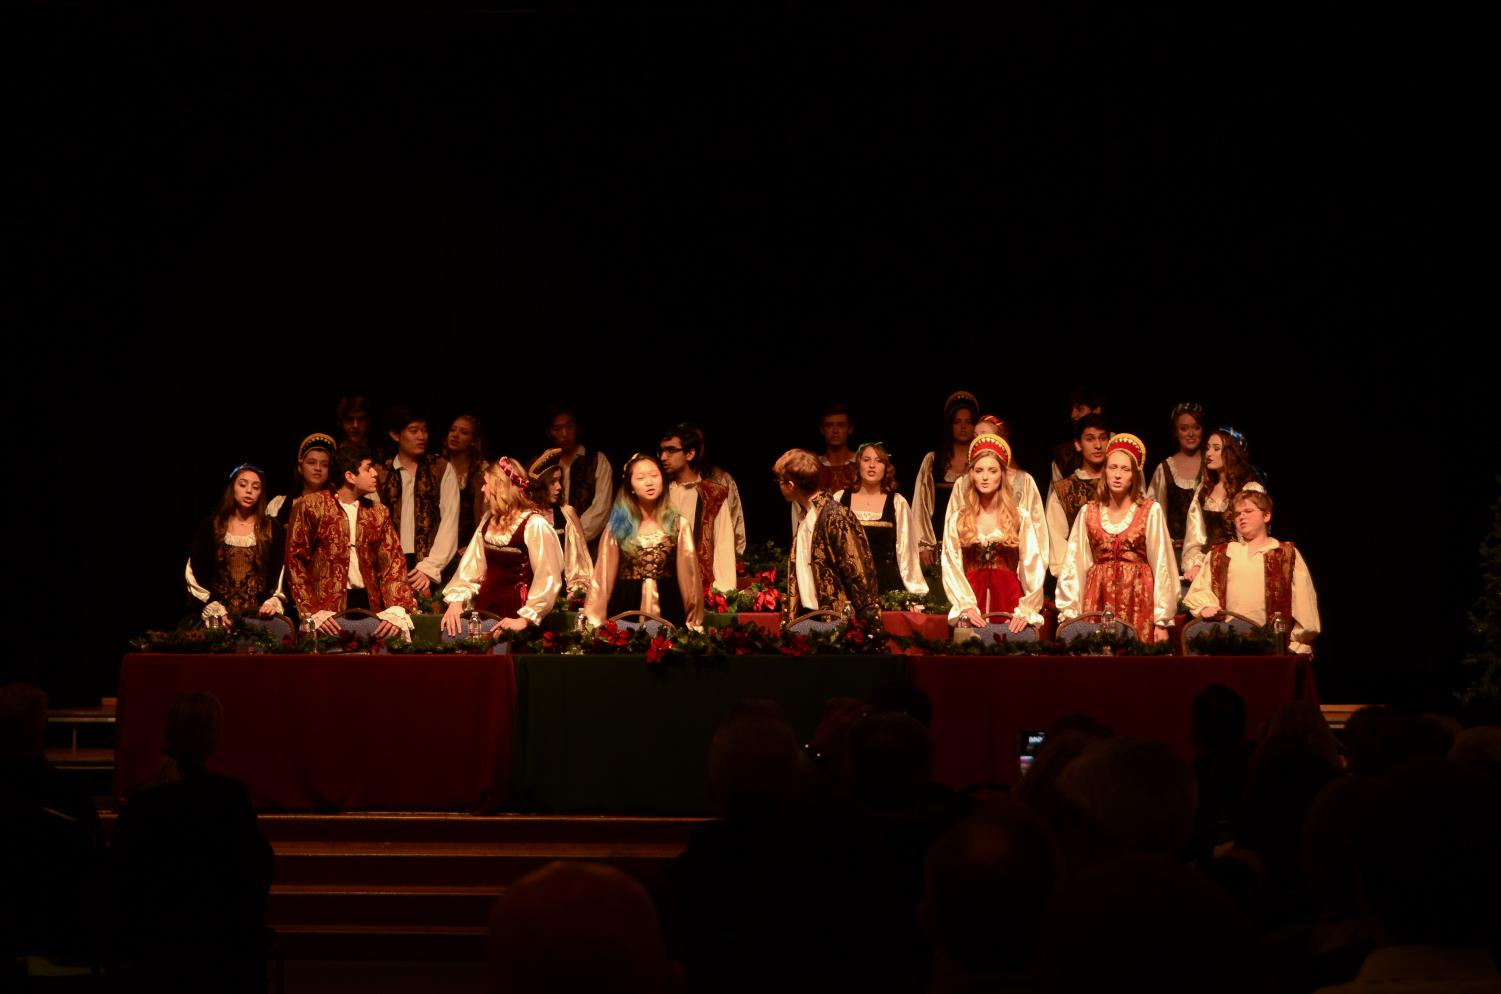 On Monday, Dec. 4, the Madrigals performed their annual winter concert at the Community House.